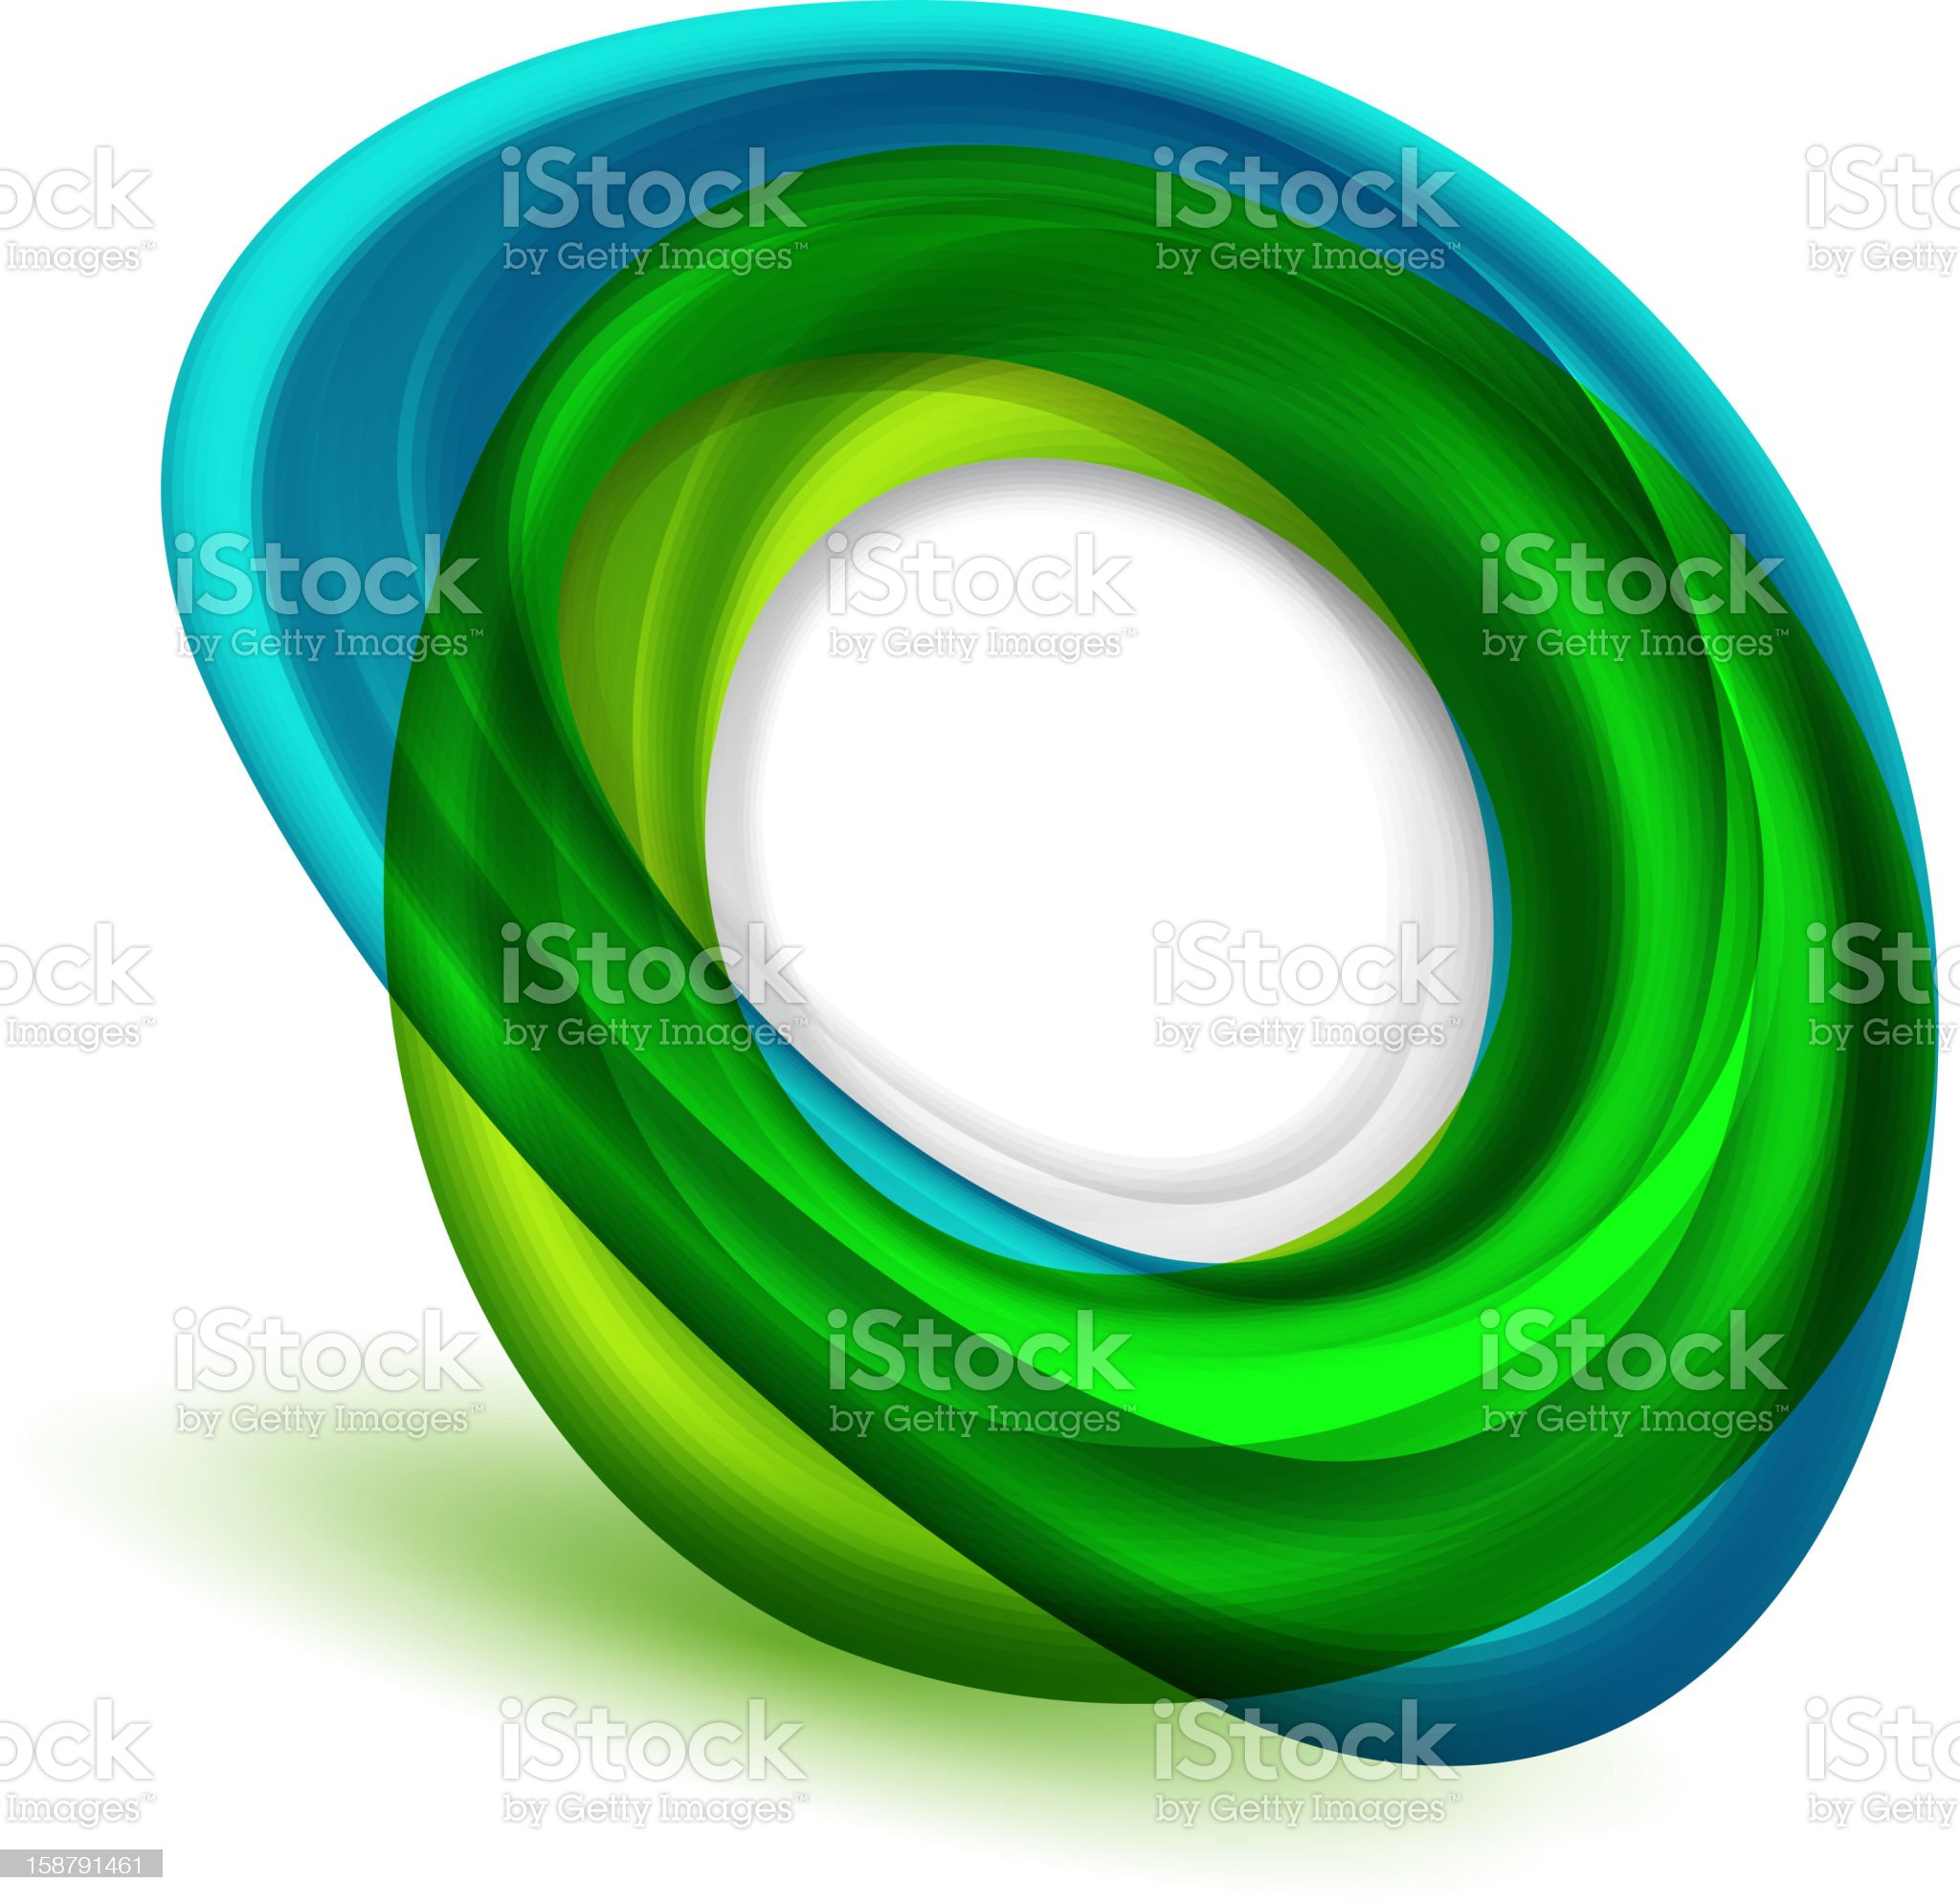 Blue and green vector shape royalty-free stock vector art